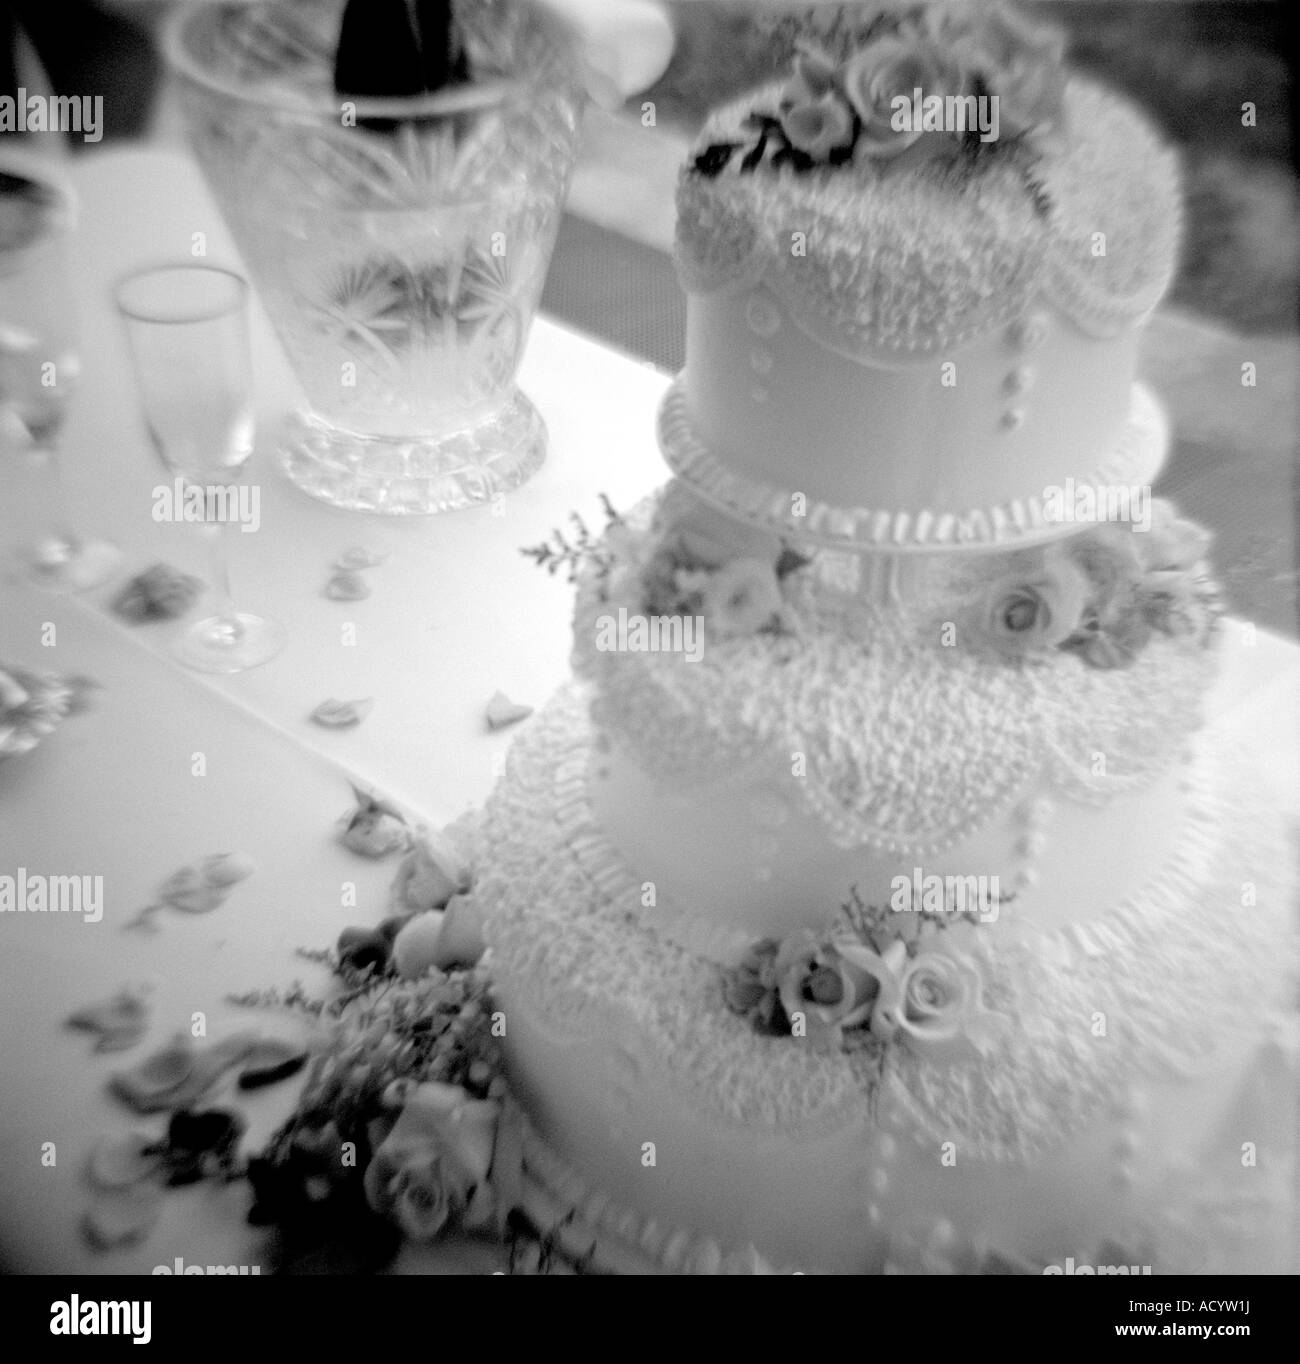 Tiers Black and White Stock Photos & Images - Alamy